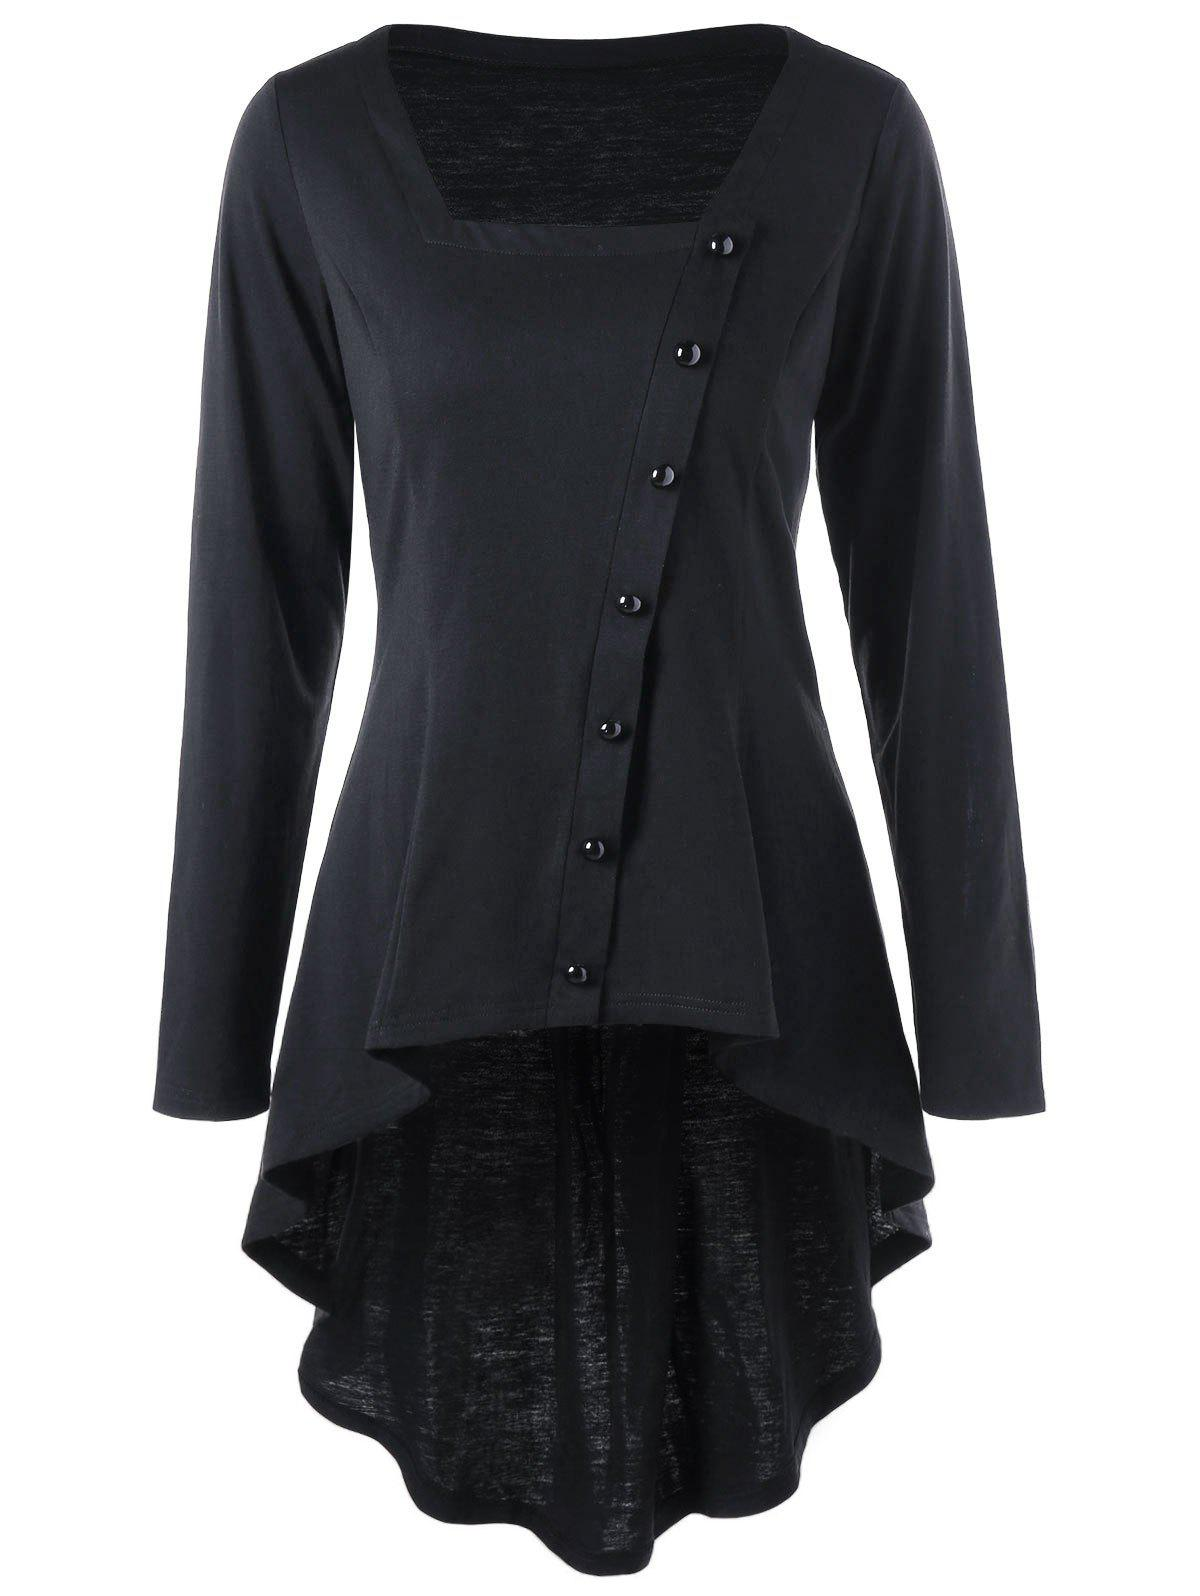 Square Neck Single Breasted Dip Hem TopWOMEN<br><br>Size: 2XL; Color: BLACK; Material: Polyester,Spandex; Shirt Length: Long; Sleeve Length: Full; Collar: Square Neck; Style: Vintage; Embellishment: Button; Pattern Type: Solid Color; Season: Fall,Spring; Weight: 0.3000kg; Package Contents: 1 x Top;